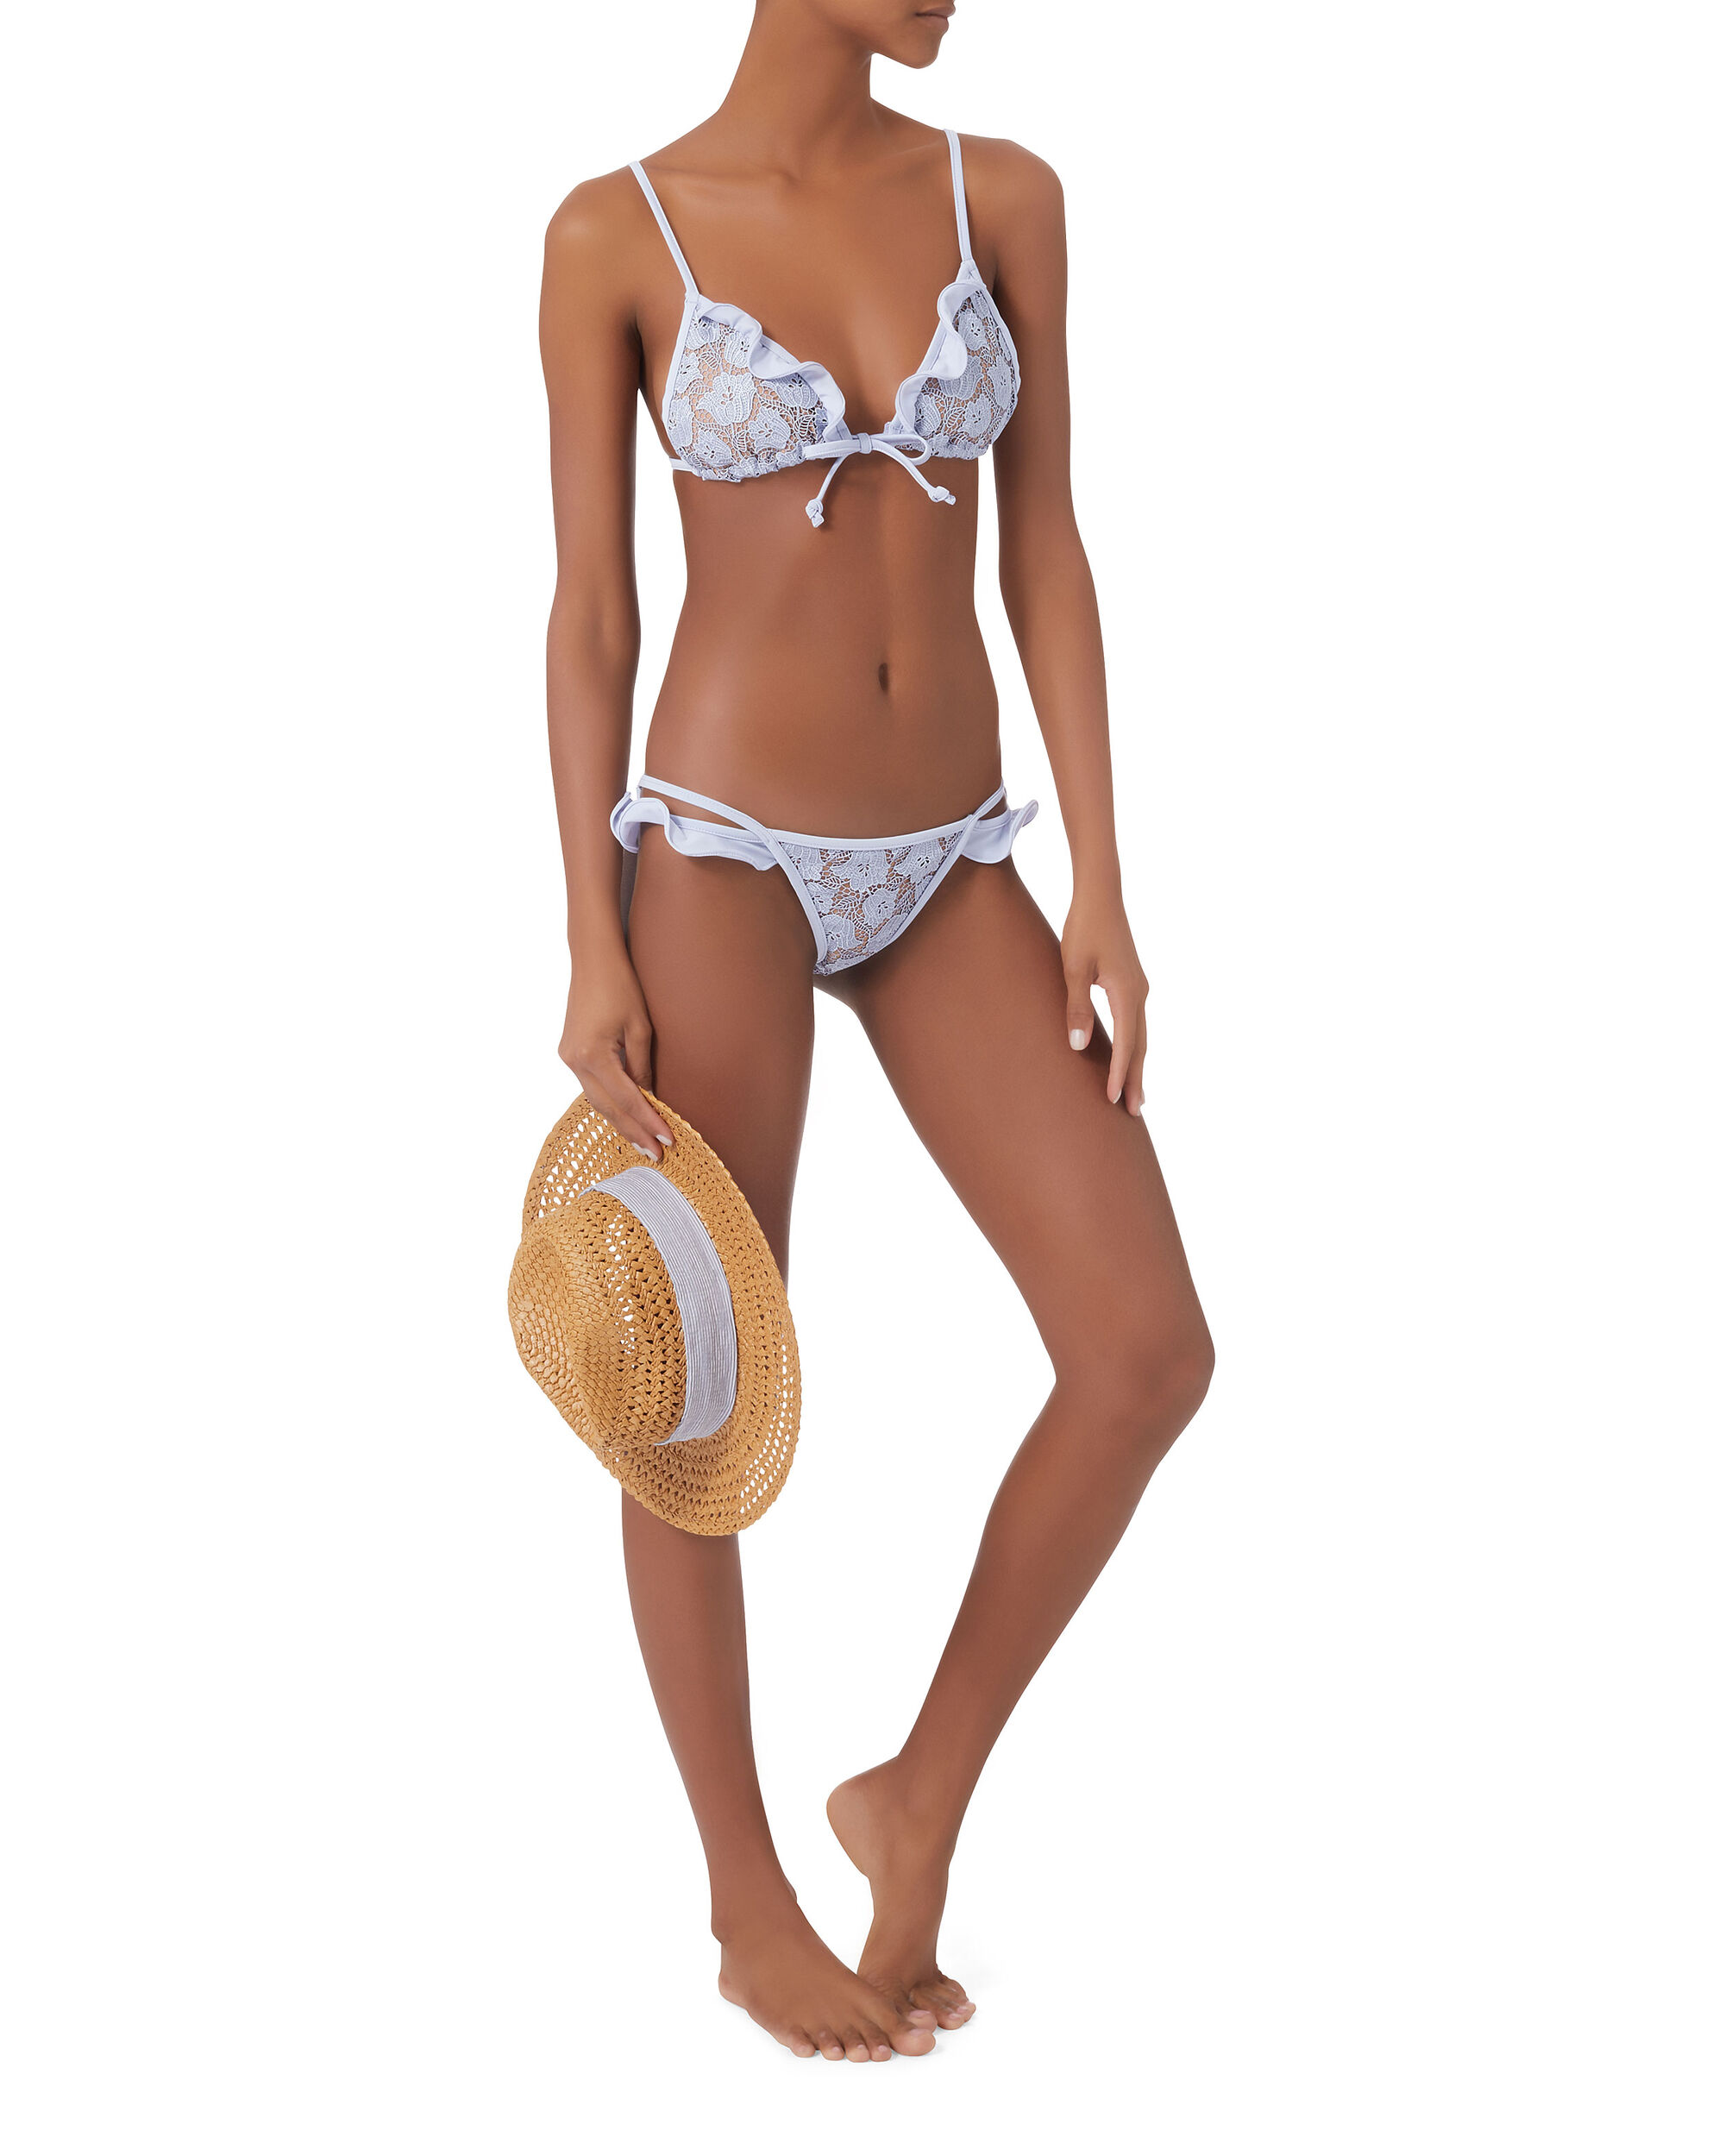 Beverly Lace Low-Rise Bikini Bottom, BLUE, hi-res